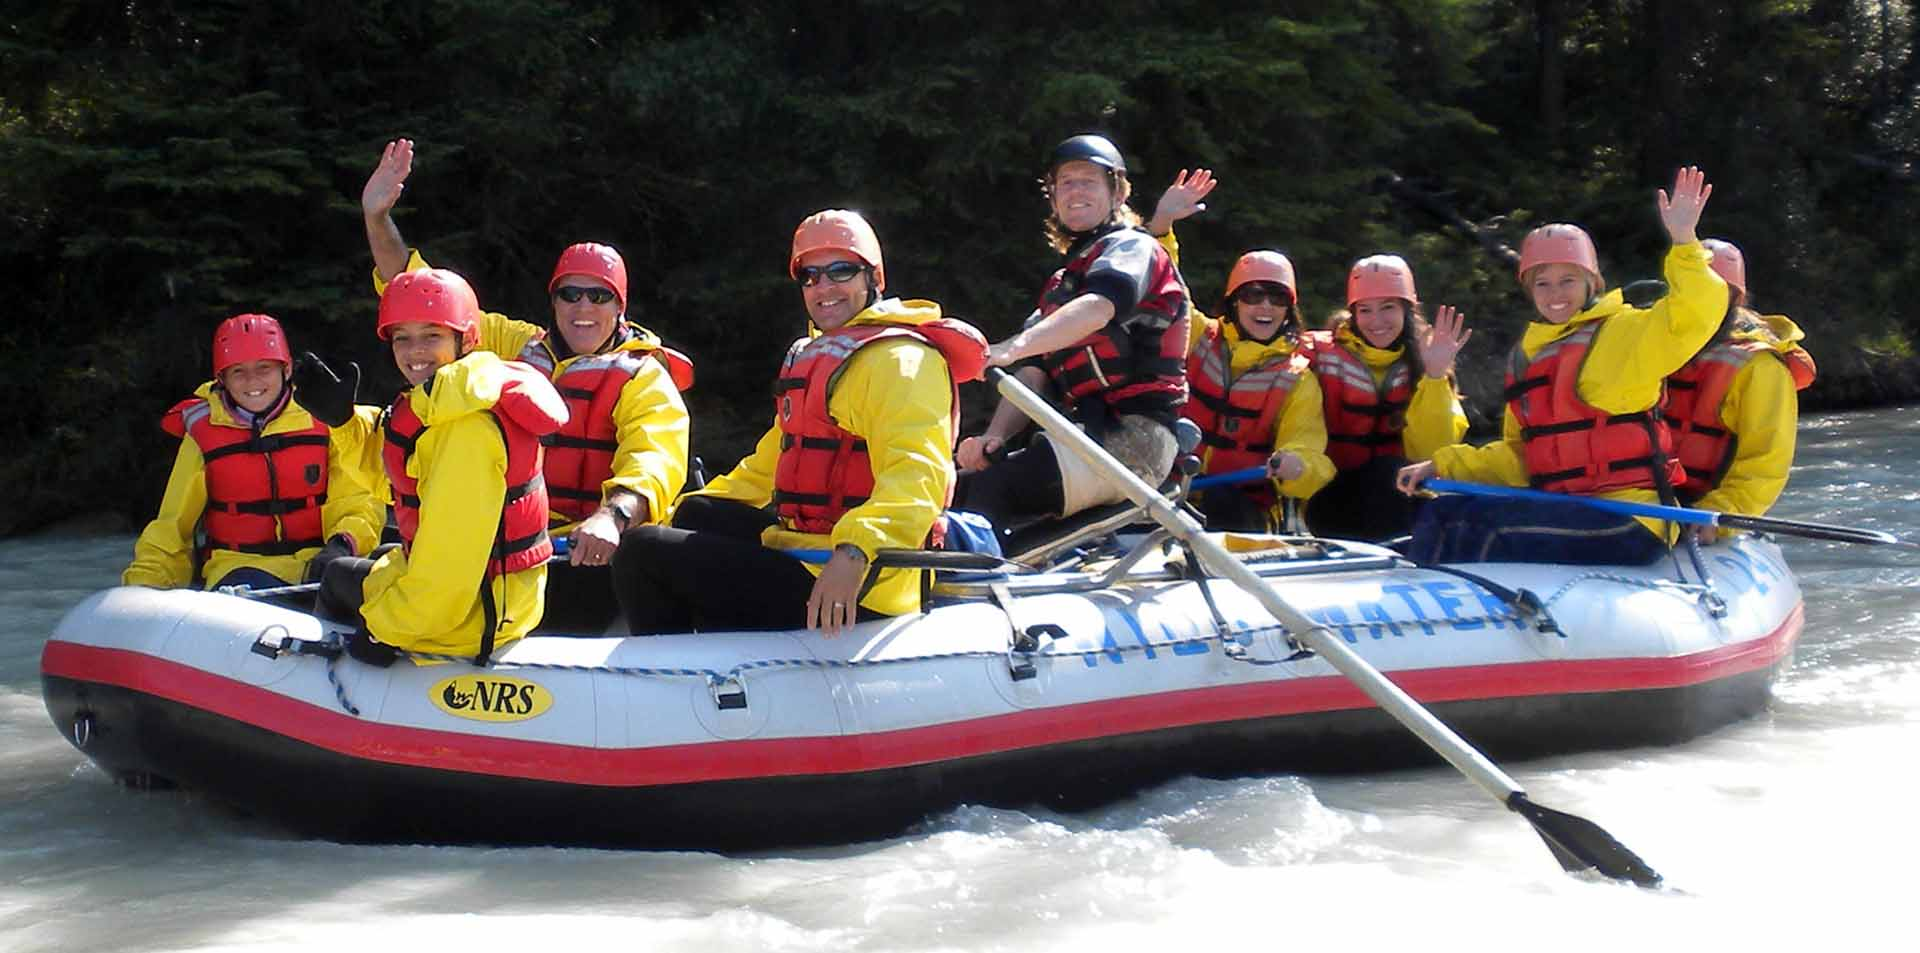 North America Canada Alberta Rockies Banff whitewater rafting family smile wave adventure - luxury vacation destinations